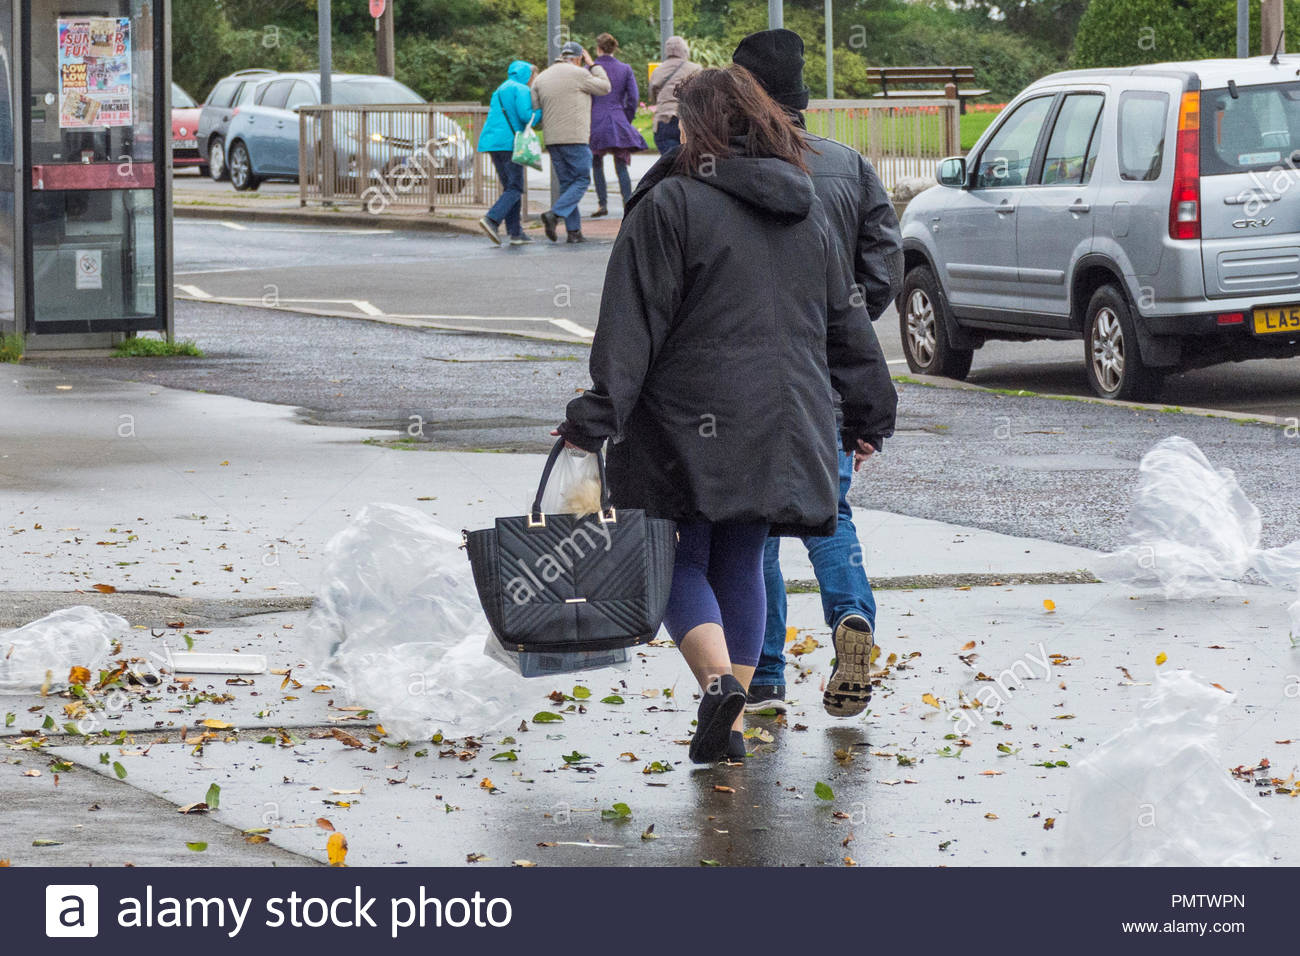 Morecambe, Lancashire, UK, Wednesday 19th September 2018, winds gusting to 50mph blow rubbish around on the seafront, presenting hazards to pedestrians and vehicles. Storm Ali, the first named storm of this season, is causing some disruption to travel and electricity supplies in Northern Ireland, North West England and Scotland. Credit: Keith Douglas News/Alamy Live News - Stock Image